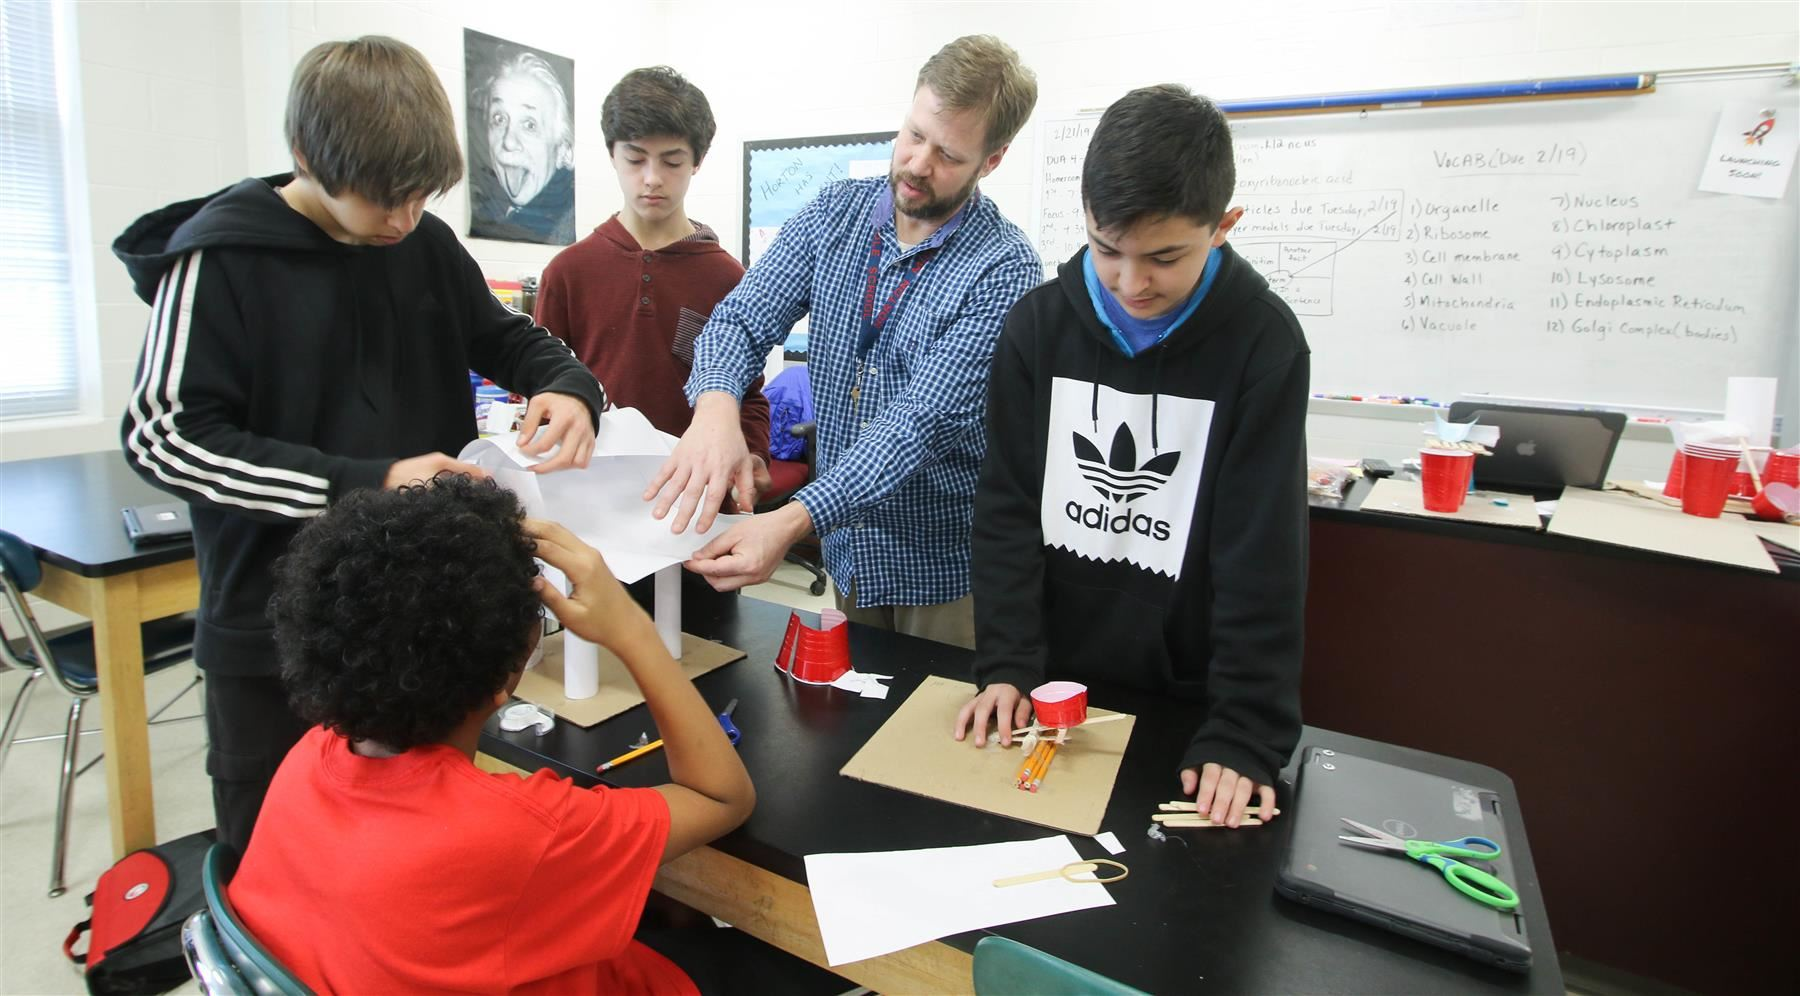 Horton Middle School teacher Michael Moore helps students with engineering concepts.